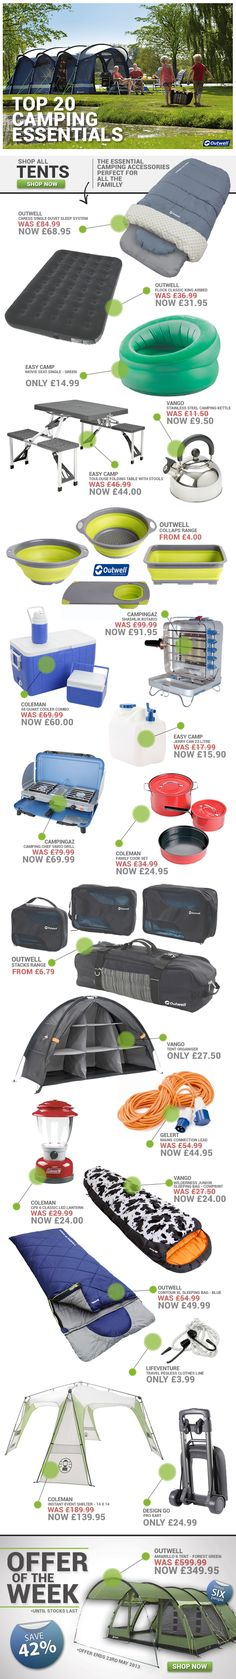 Top 20 Camping Essentials from www.simplyhike.co.uk Wish I could find that organizer here in US..